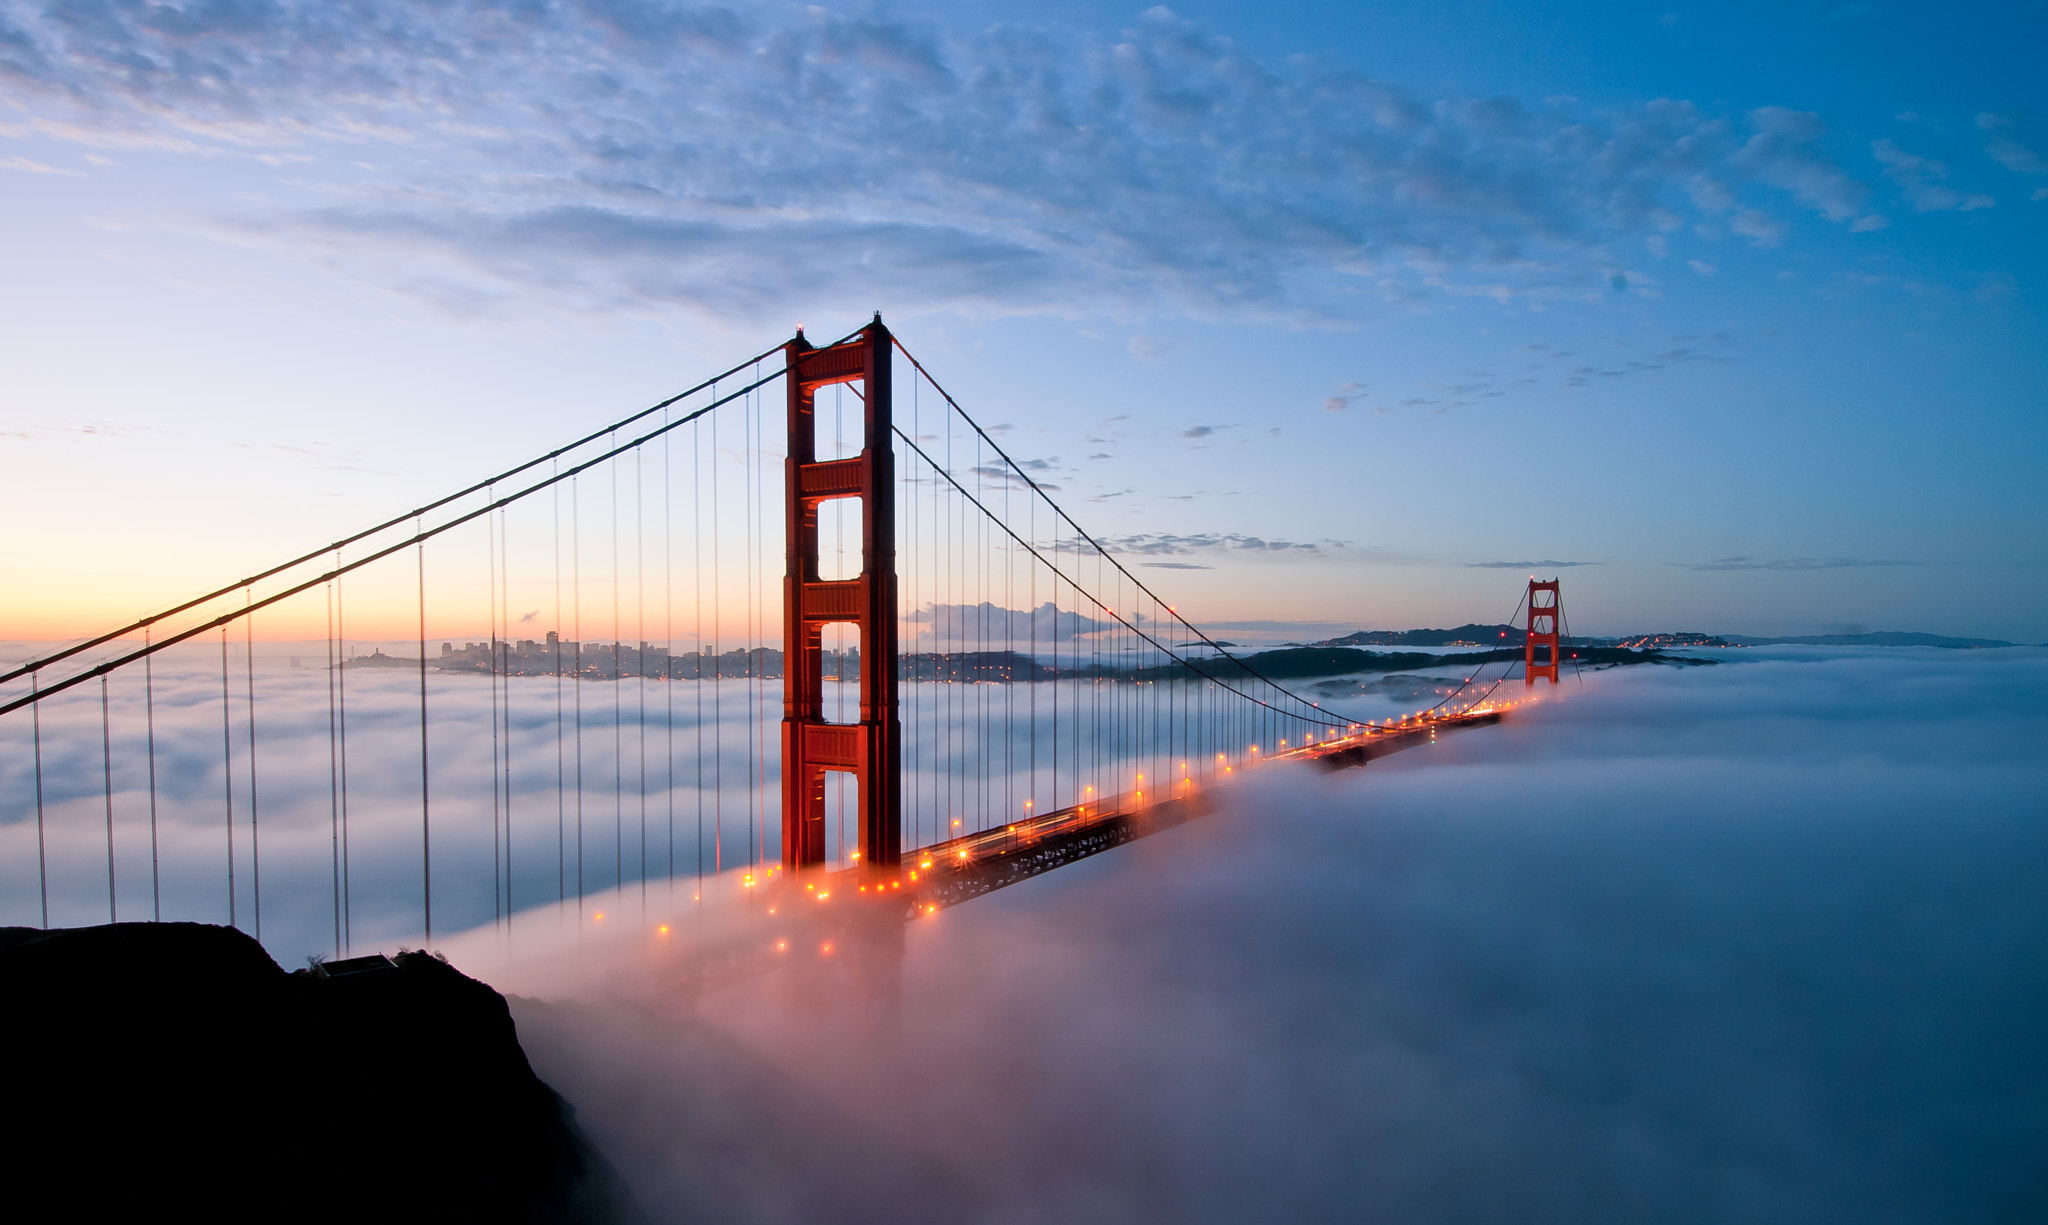 Photograph Good morning, San Francisco by Michelle Lee on 500px